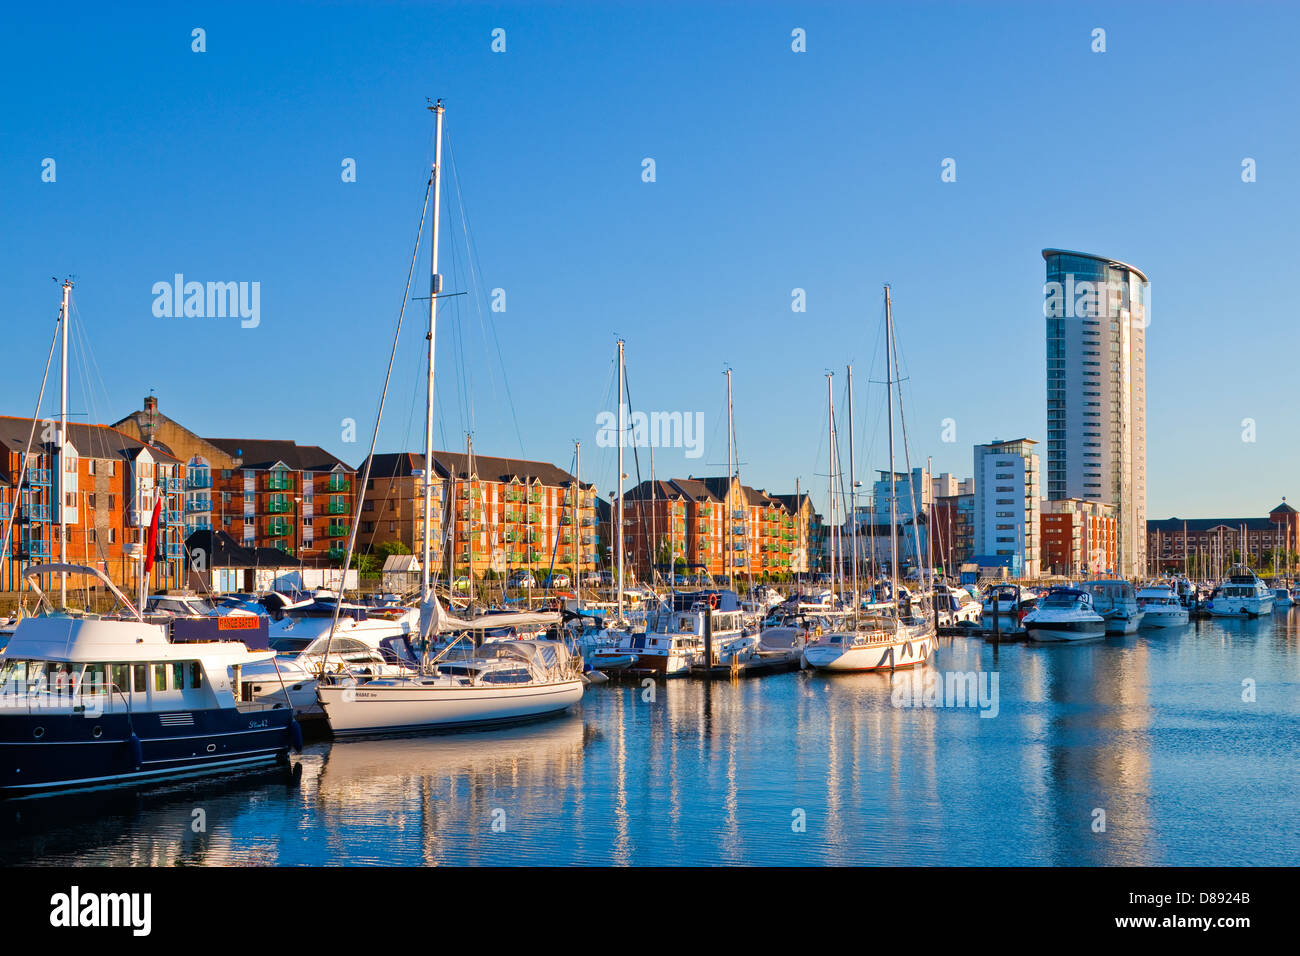 Swansea Maritime Quarter Swansea Marina Swansea Wales at twilight - Stock Image